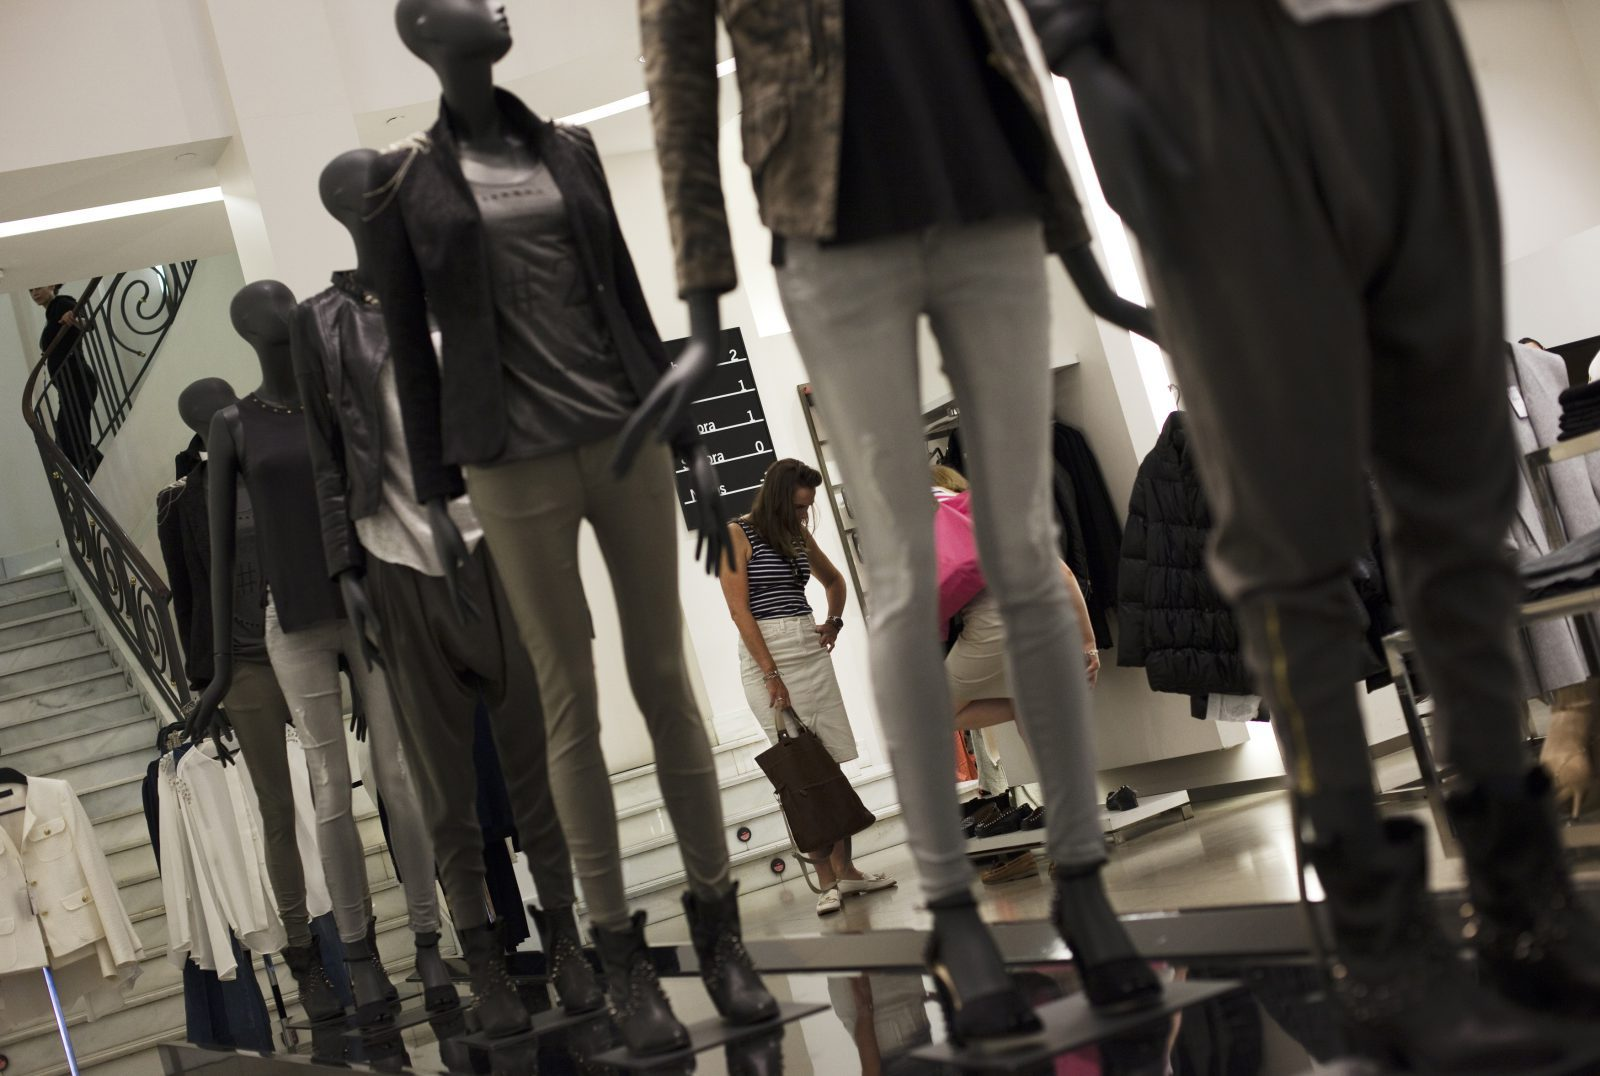 A customer tries on shoes at a Zara store in Madrid September 19, 2012. Fast-changing fashion ranges and a drive to win new customers online and in emerging markets helped Spain's Inditex, the world's biggest clothing retailer and owner of the Zara brand, to beat first-half profit forecasts on Wednesday.